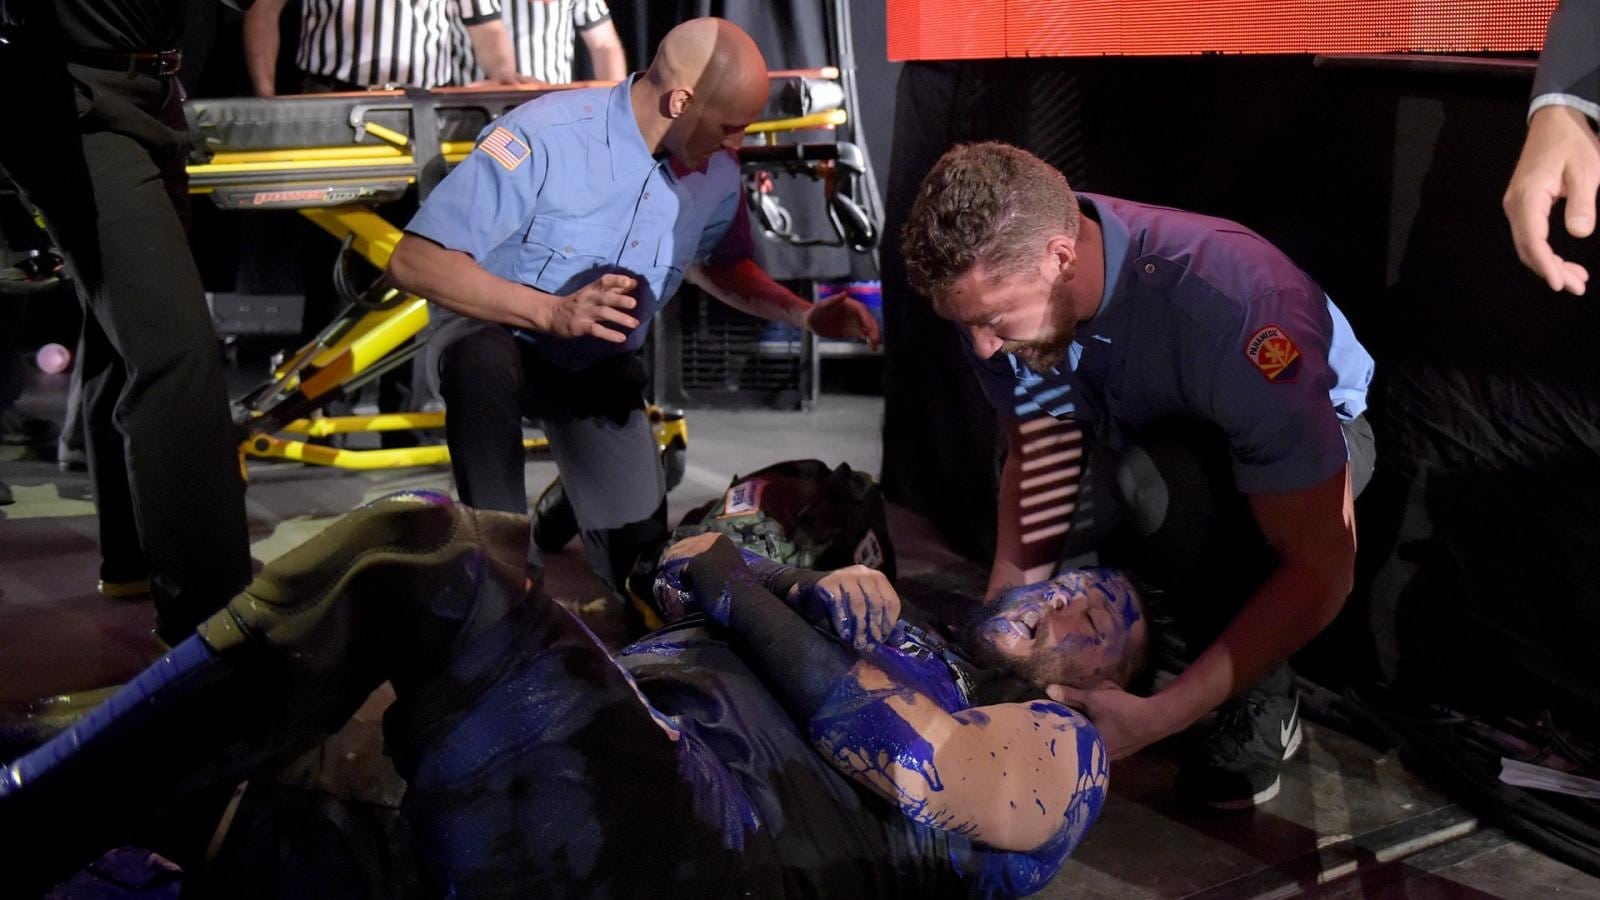 WWE Raw Season 26 :Episode 27  July 2, 2018 (Sioux Falls, SD)